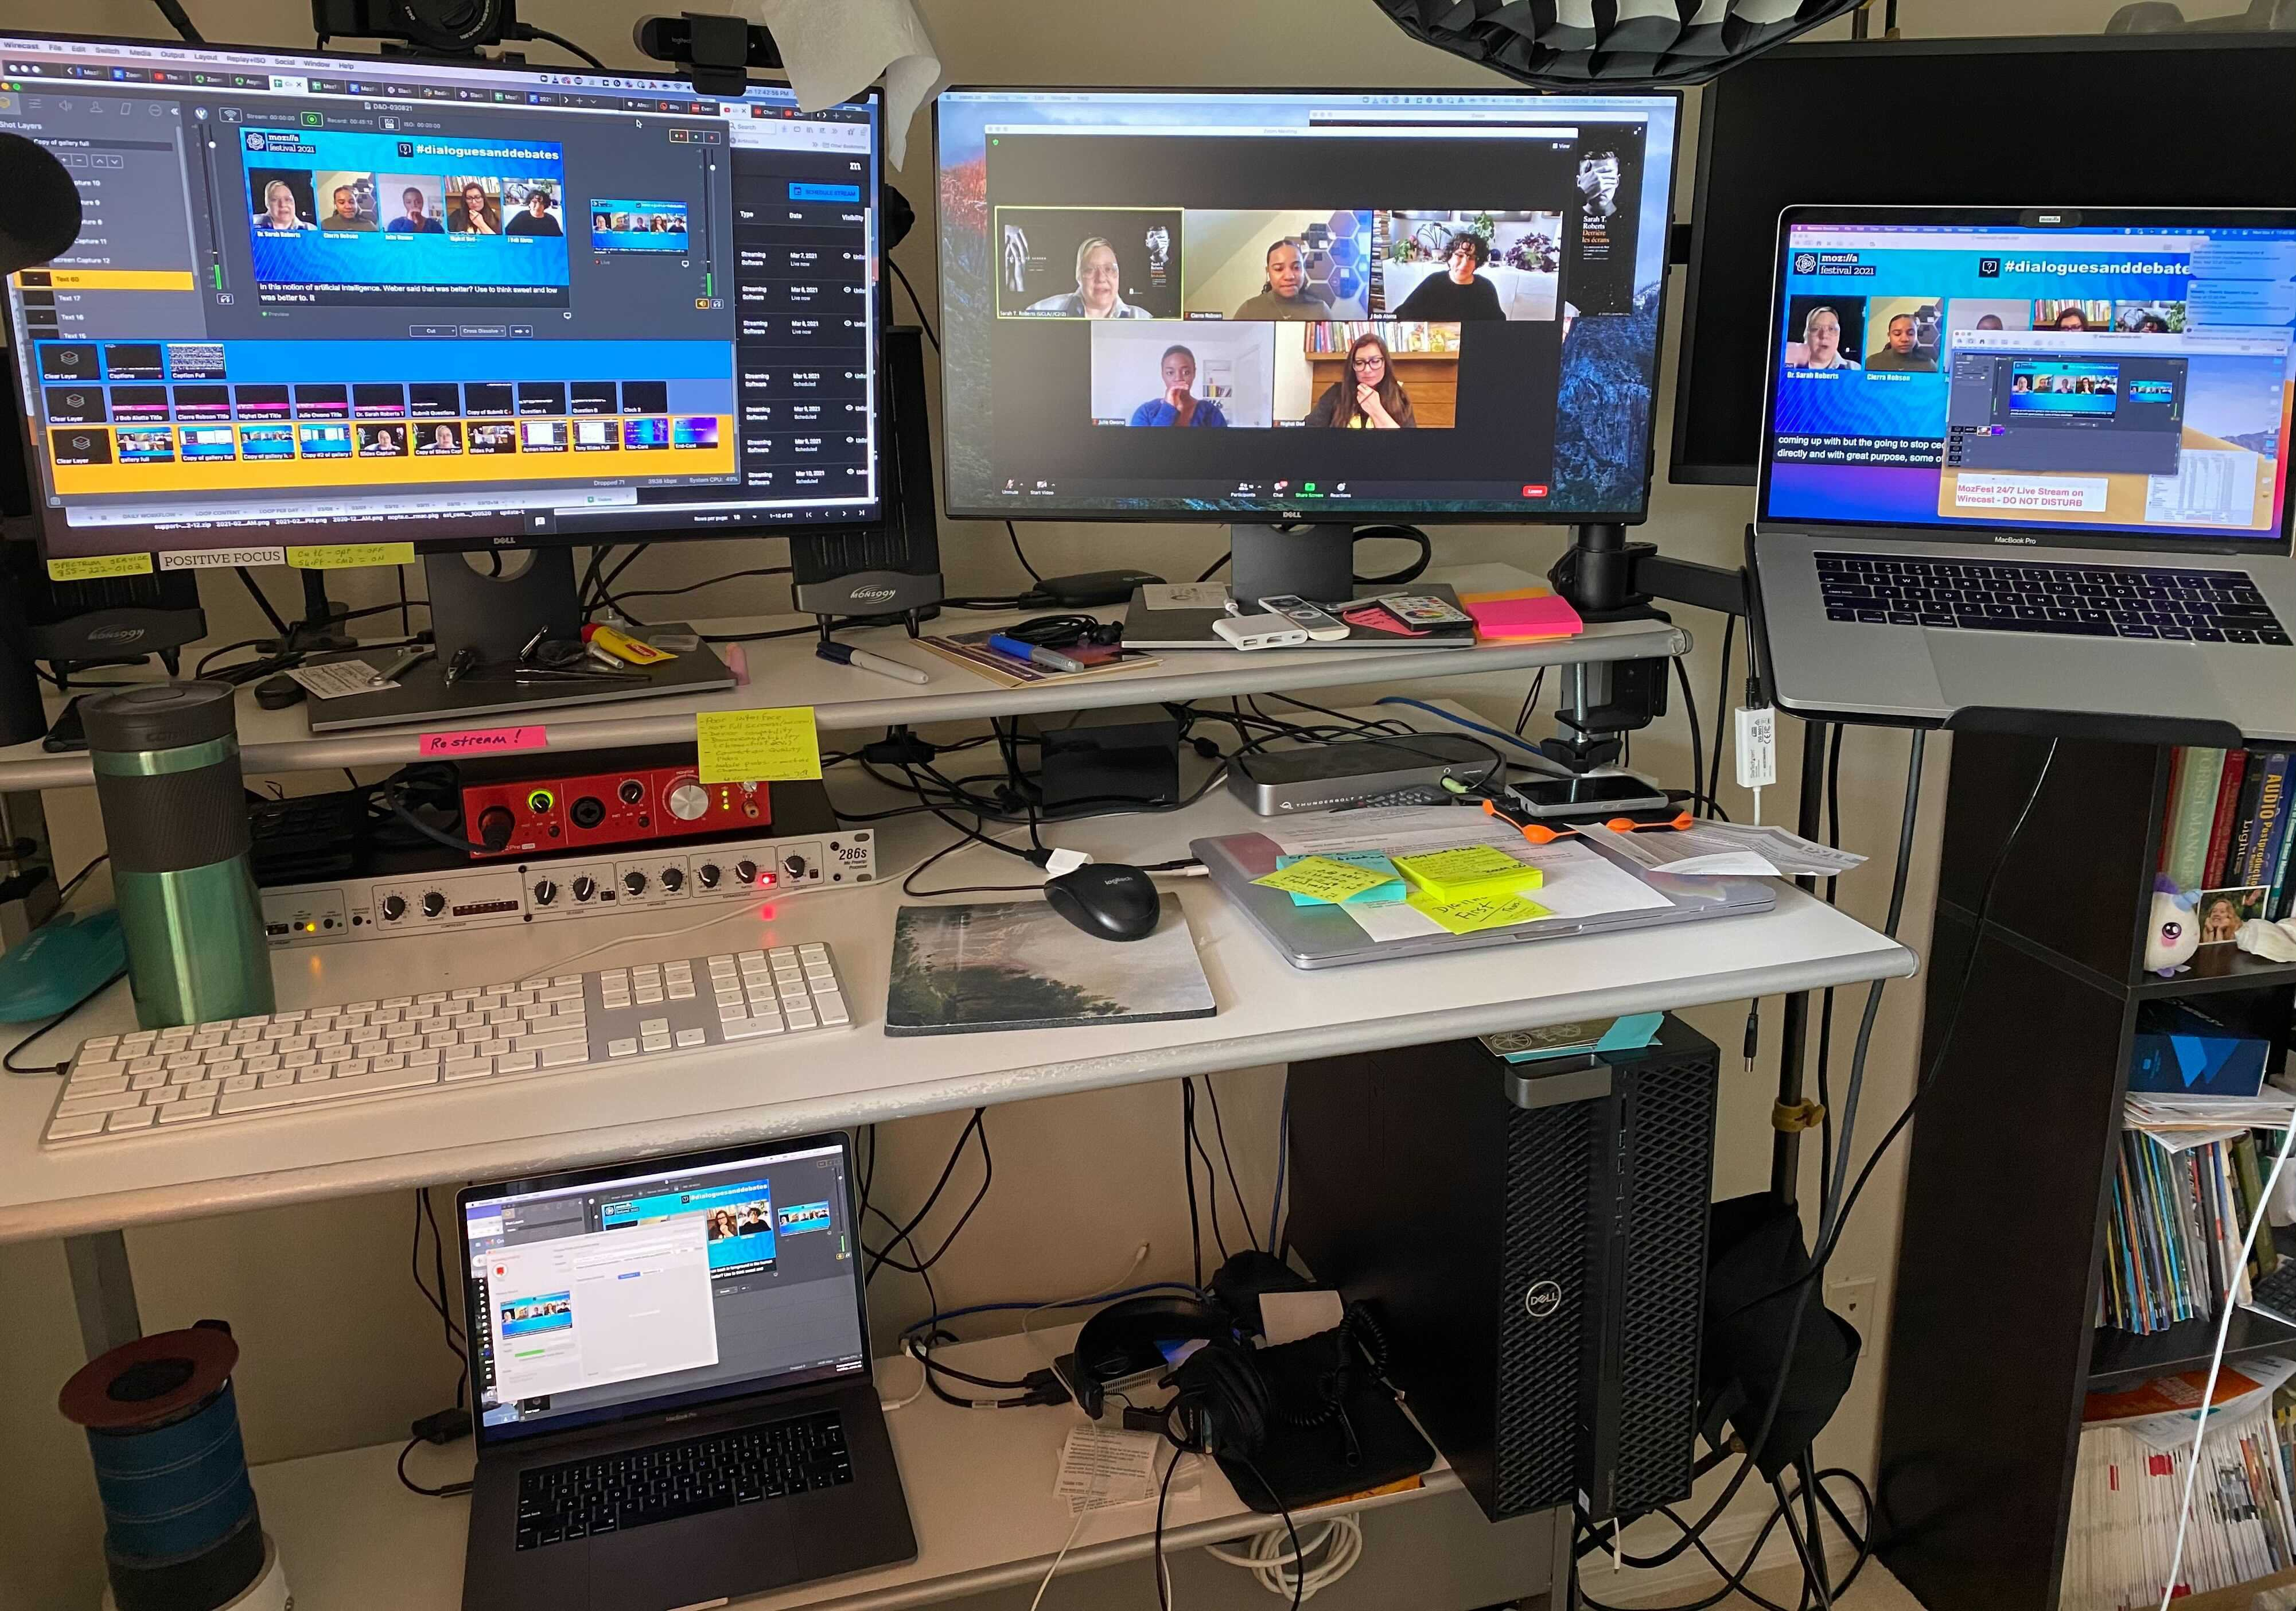 Live stream A/V workstation with multiple monitors on top of and below desk showing various views of the behind the scenes of a live broadcast